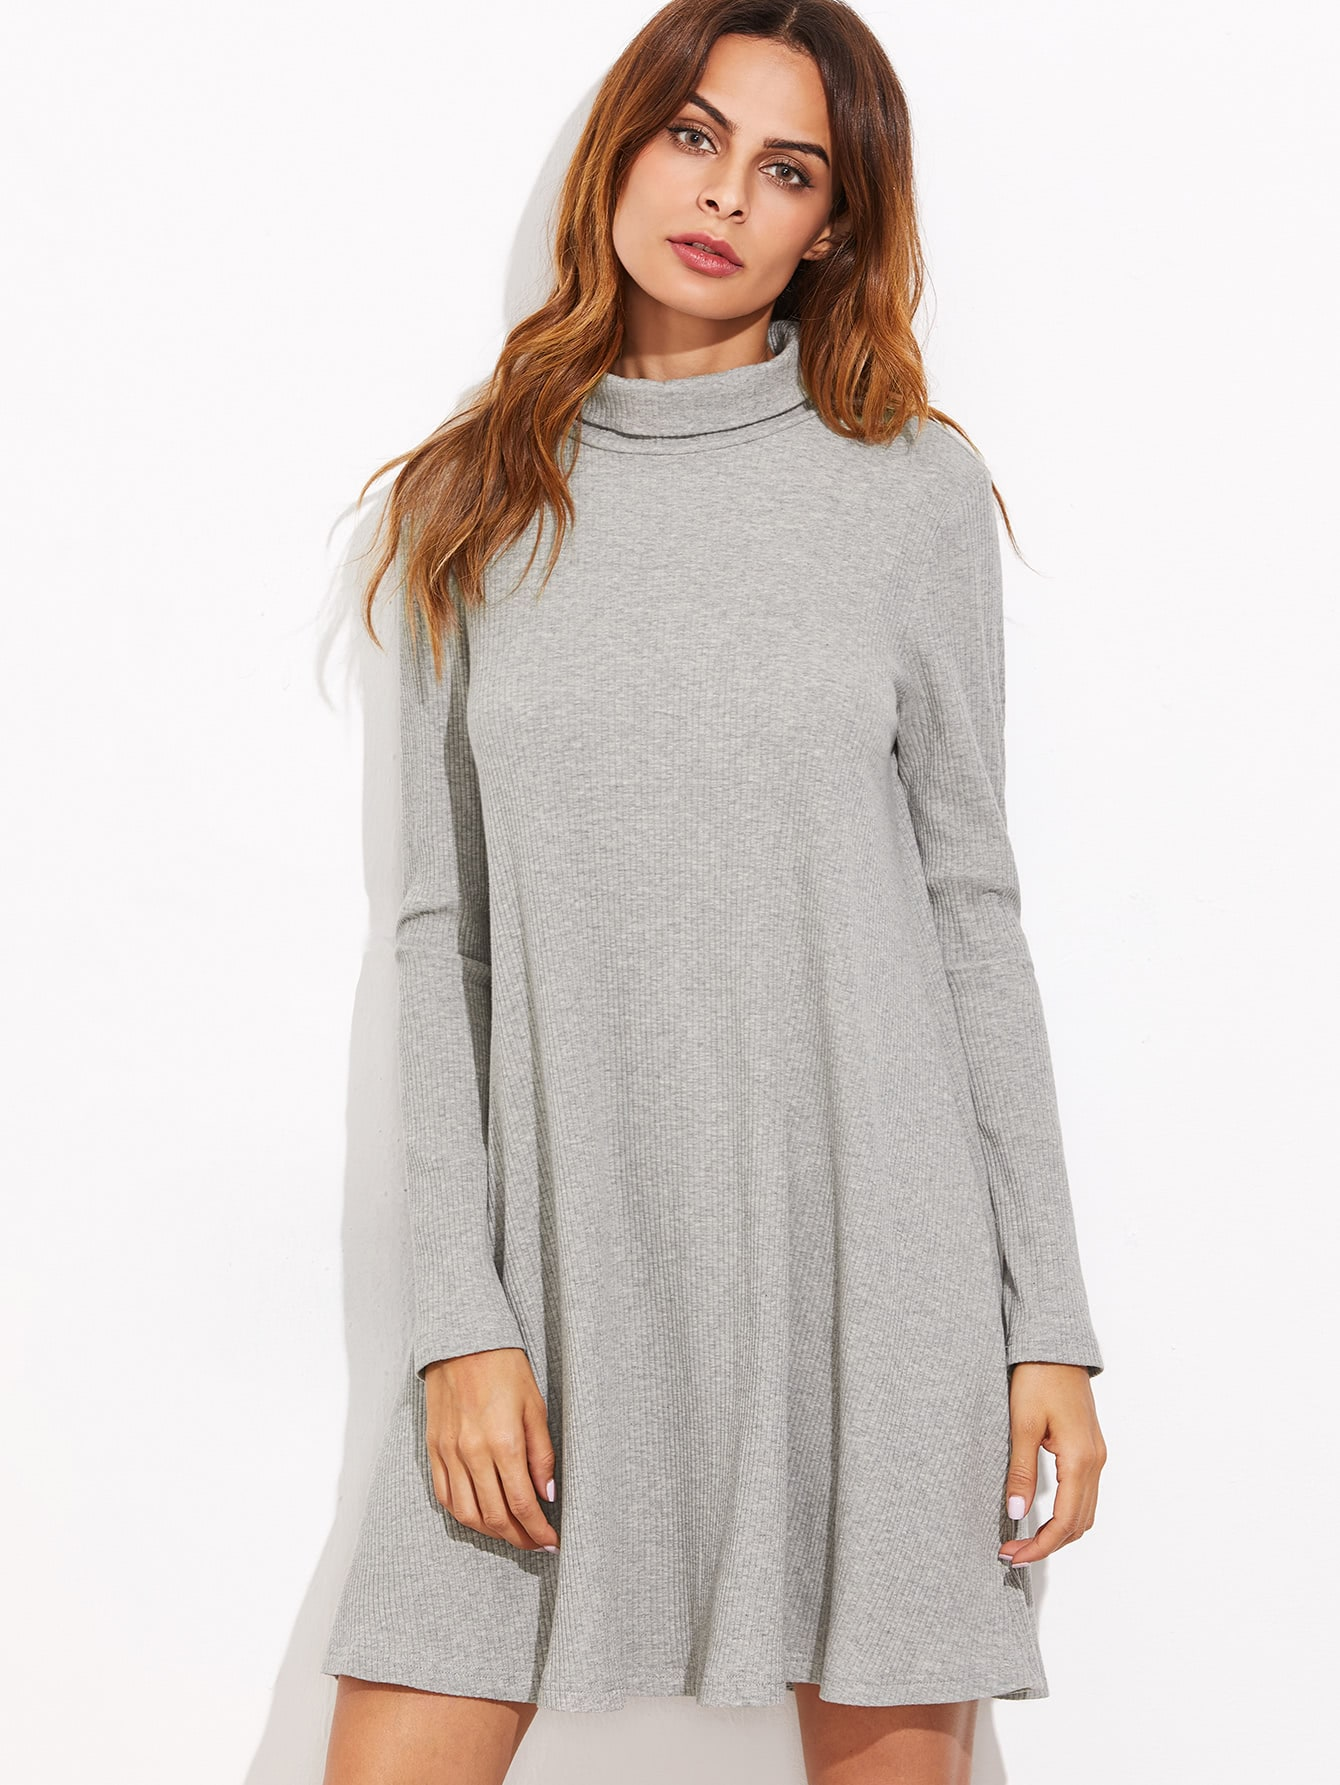 Heather Grey High Neck Ribbed Swing Dress dress161018704